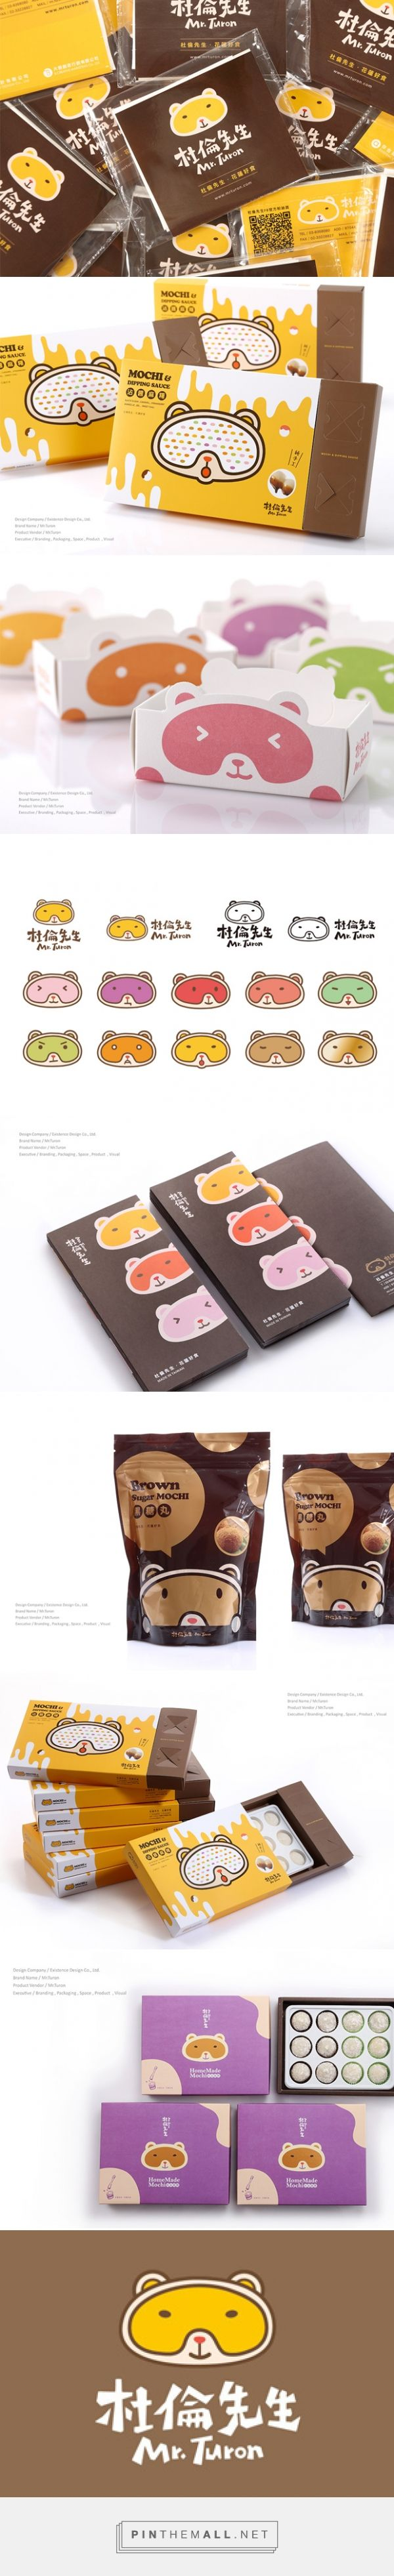 杜倫先生品牌規劃 | 存在設計 @ Design Group curated by Packaging Diva PD. Cute Mr. Turon products for the packaging smile file : )... - a grouped images picture - Pin Them All